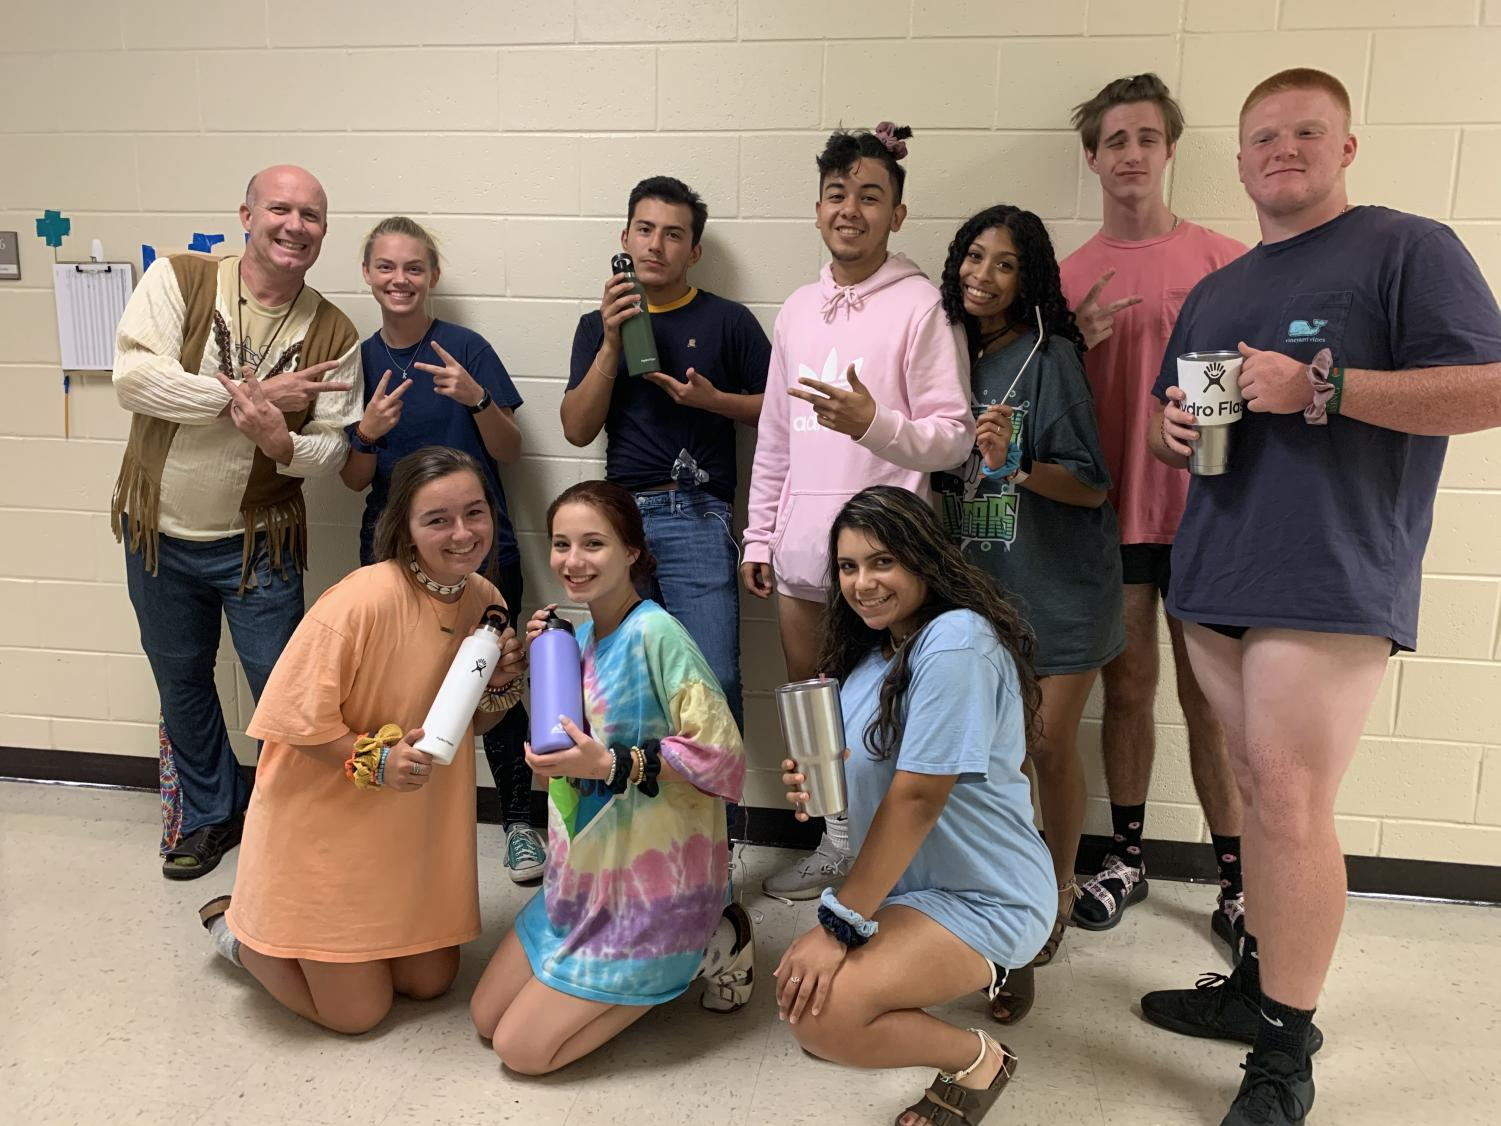 Rawlins the hippie and his class of VSCO girls